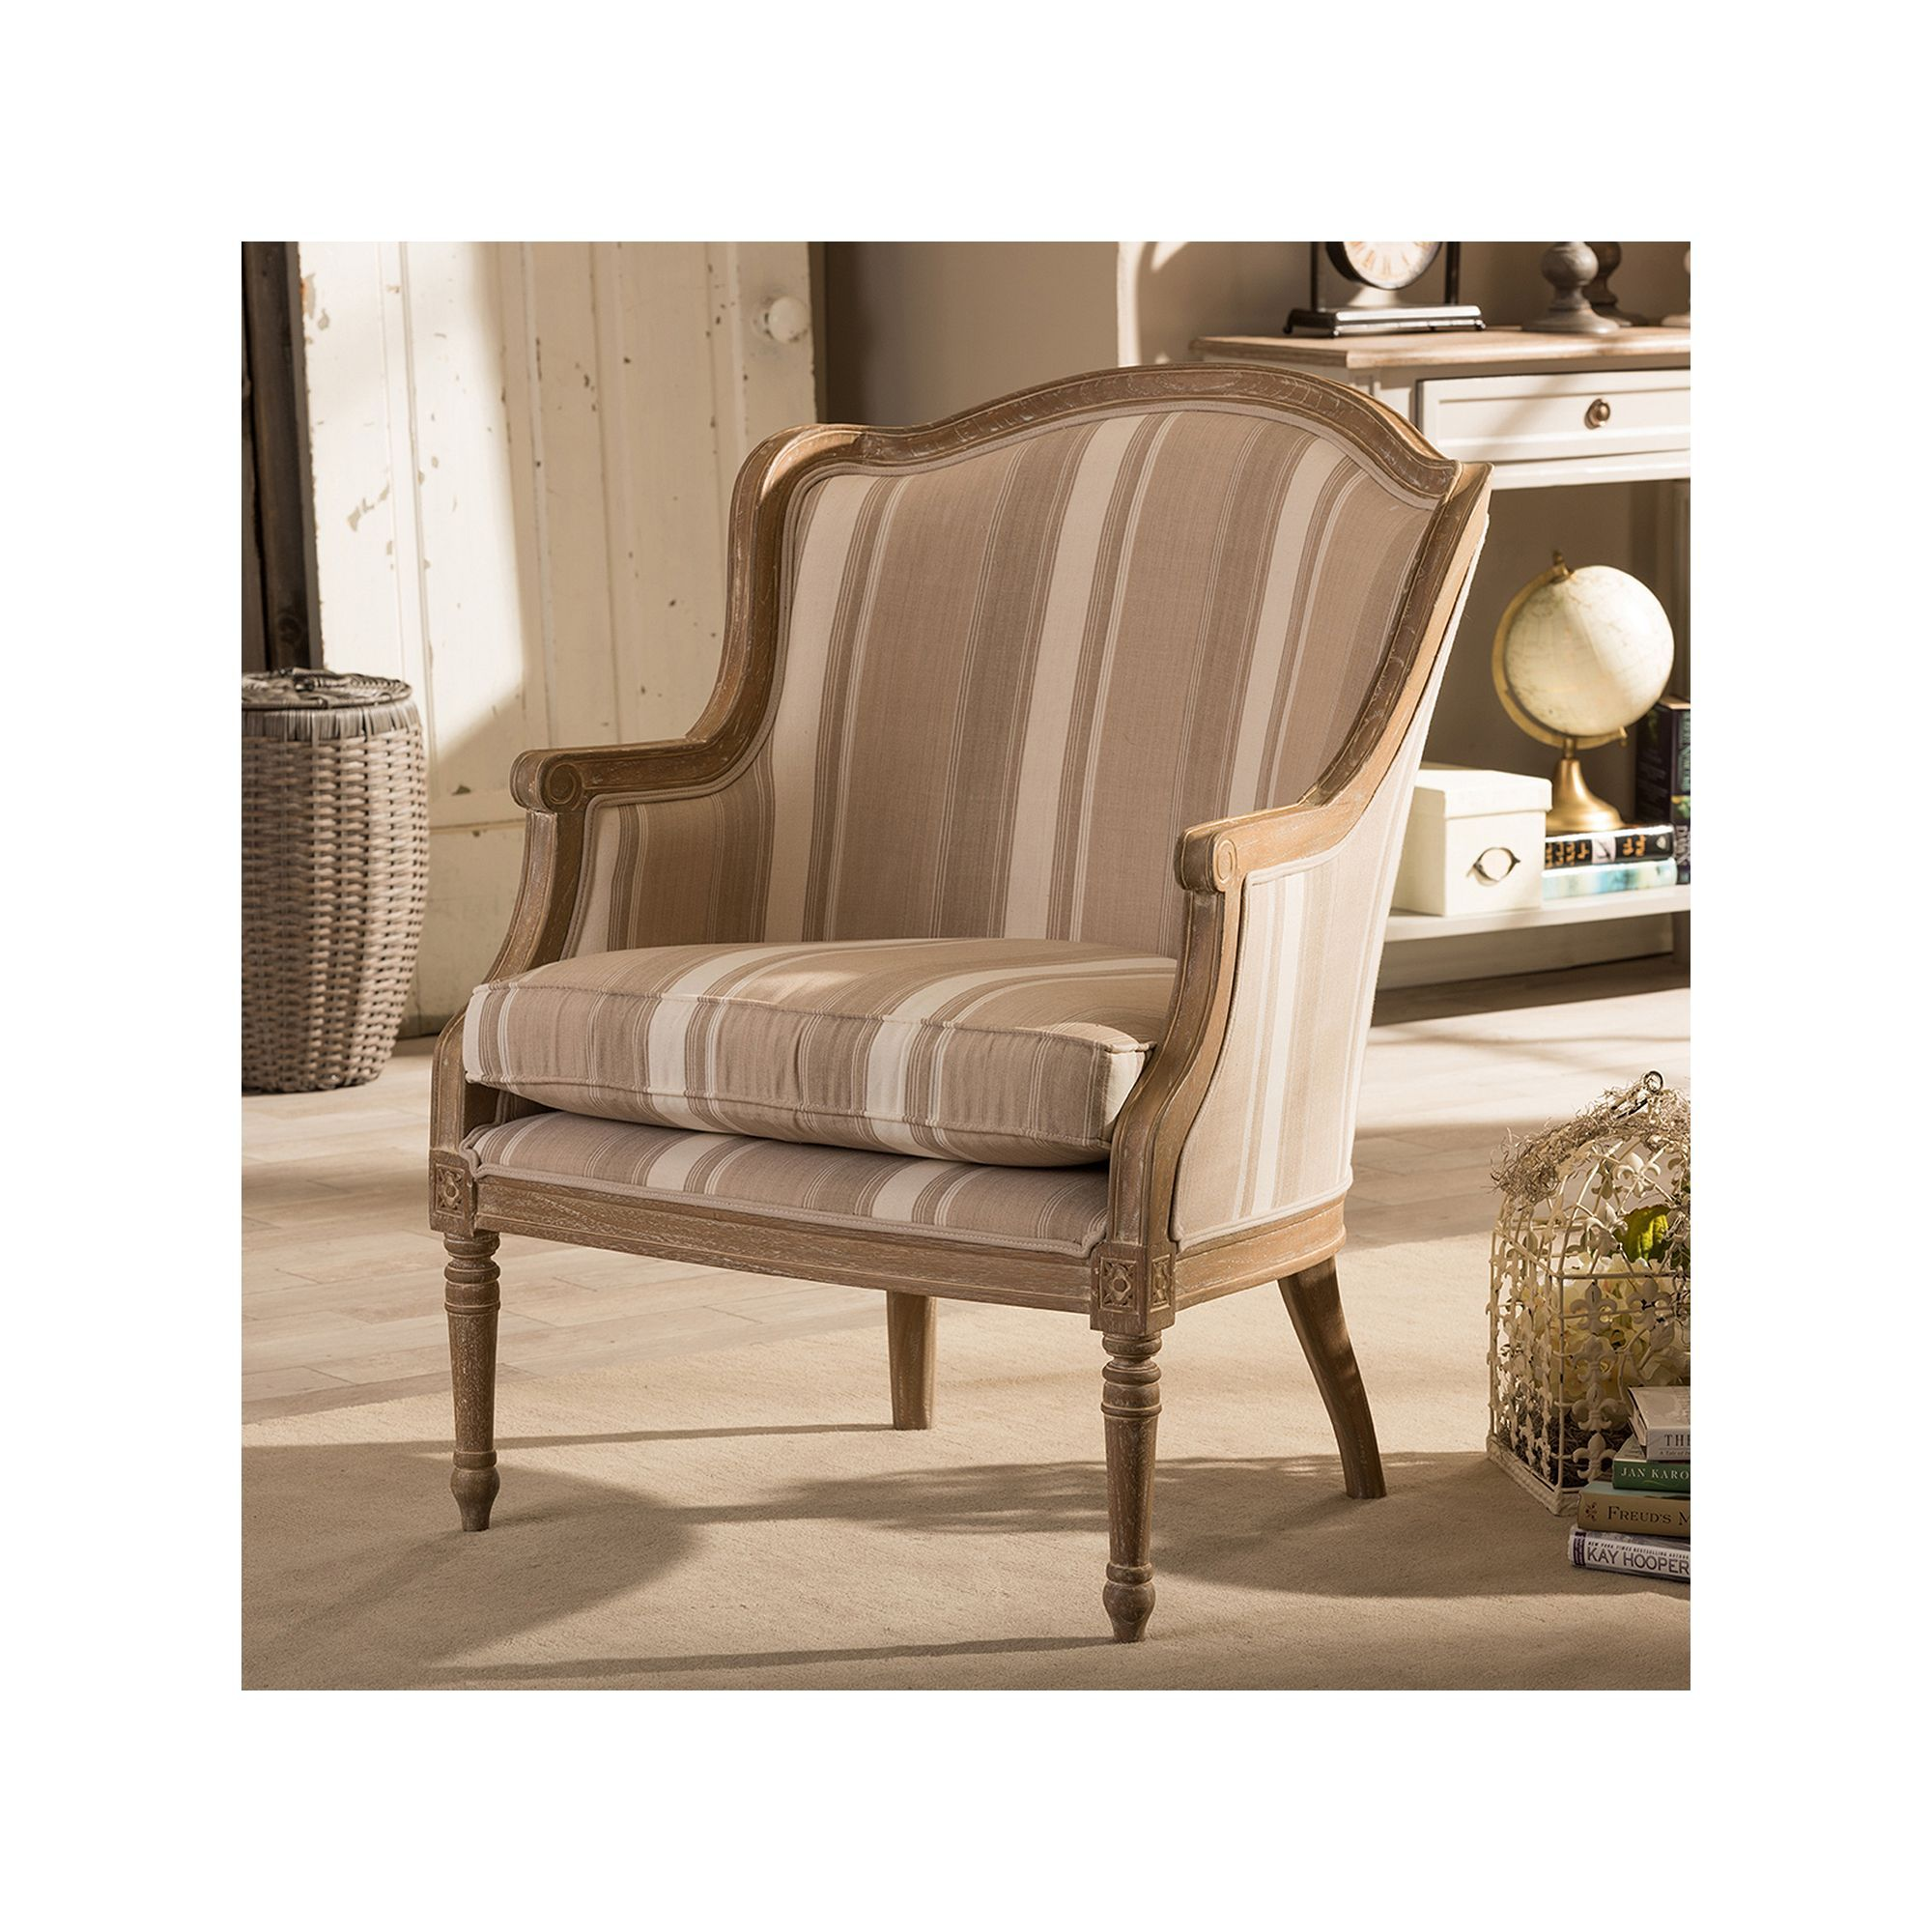 Baxton Studios Charlemagne Accent Chair Oak: Baxton Studio Charlemagne French Accent Chair